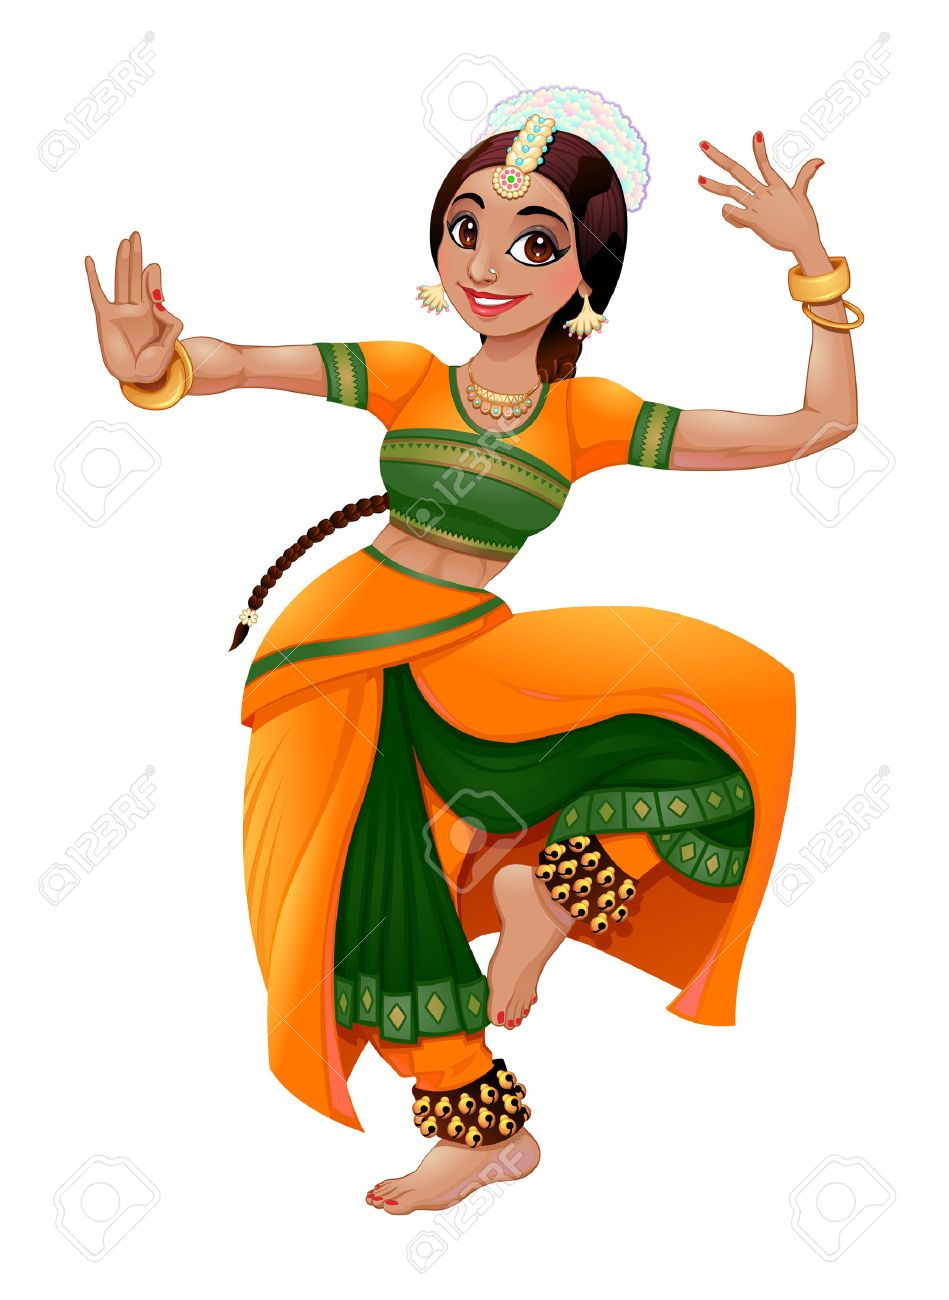 3 147 indian dance cliparts stock vector and royalty free indian rh 123rf com indian clipart fonts free download indian clipart fonts free download